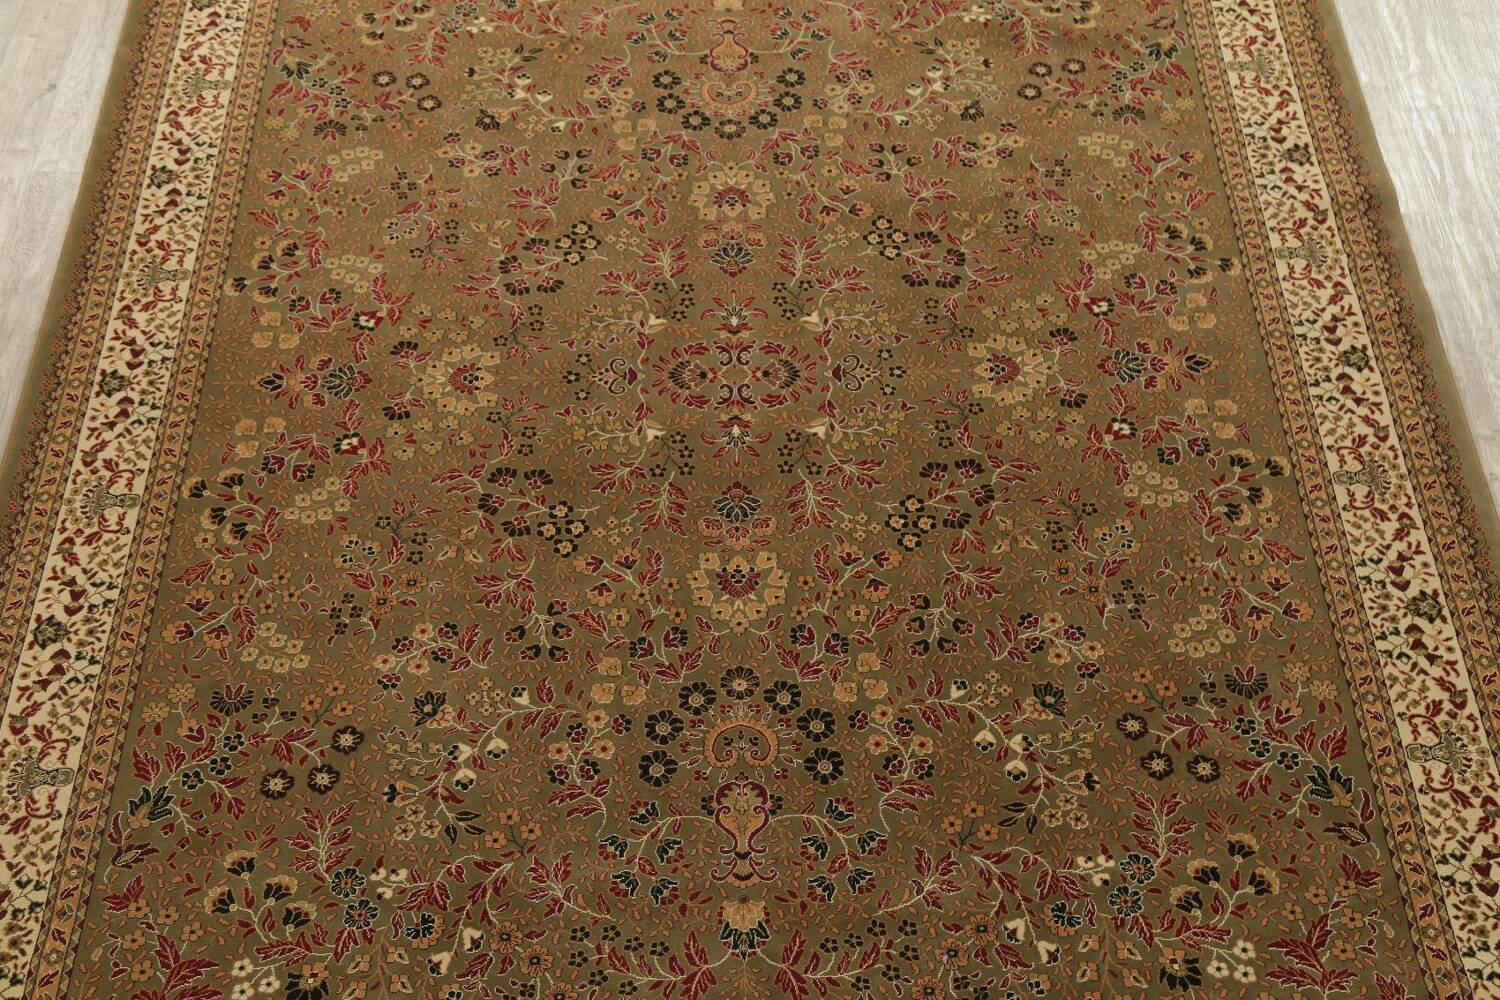 All-Over Floral Agra Turkish Area Rugs image 5